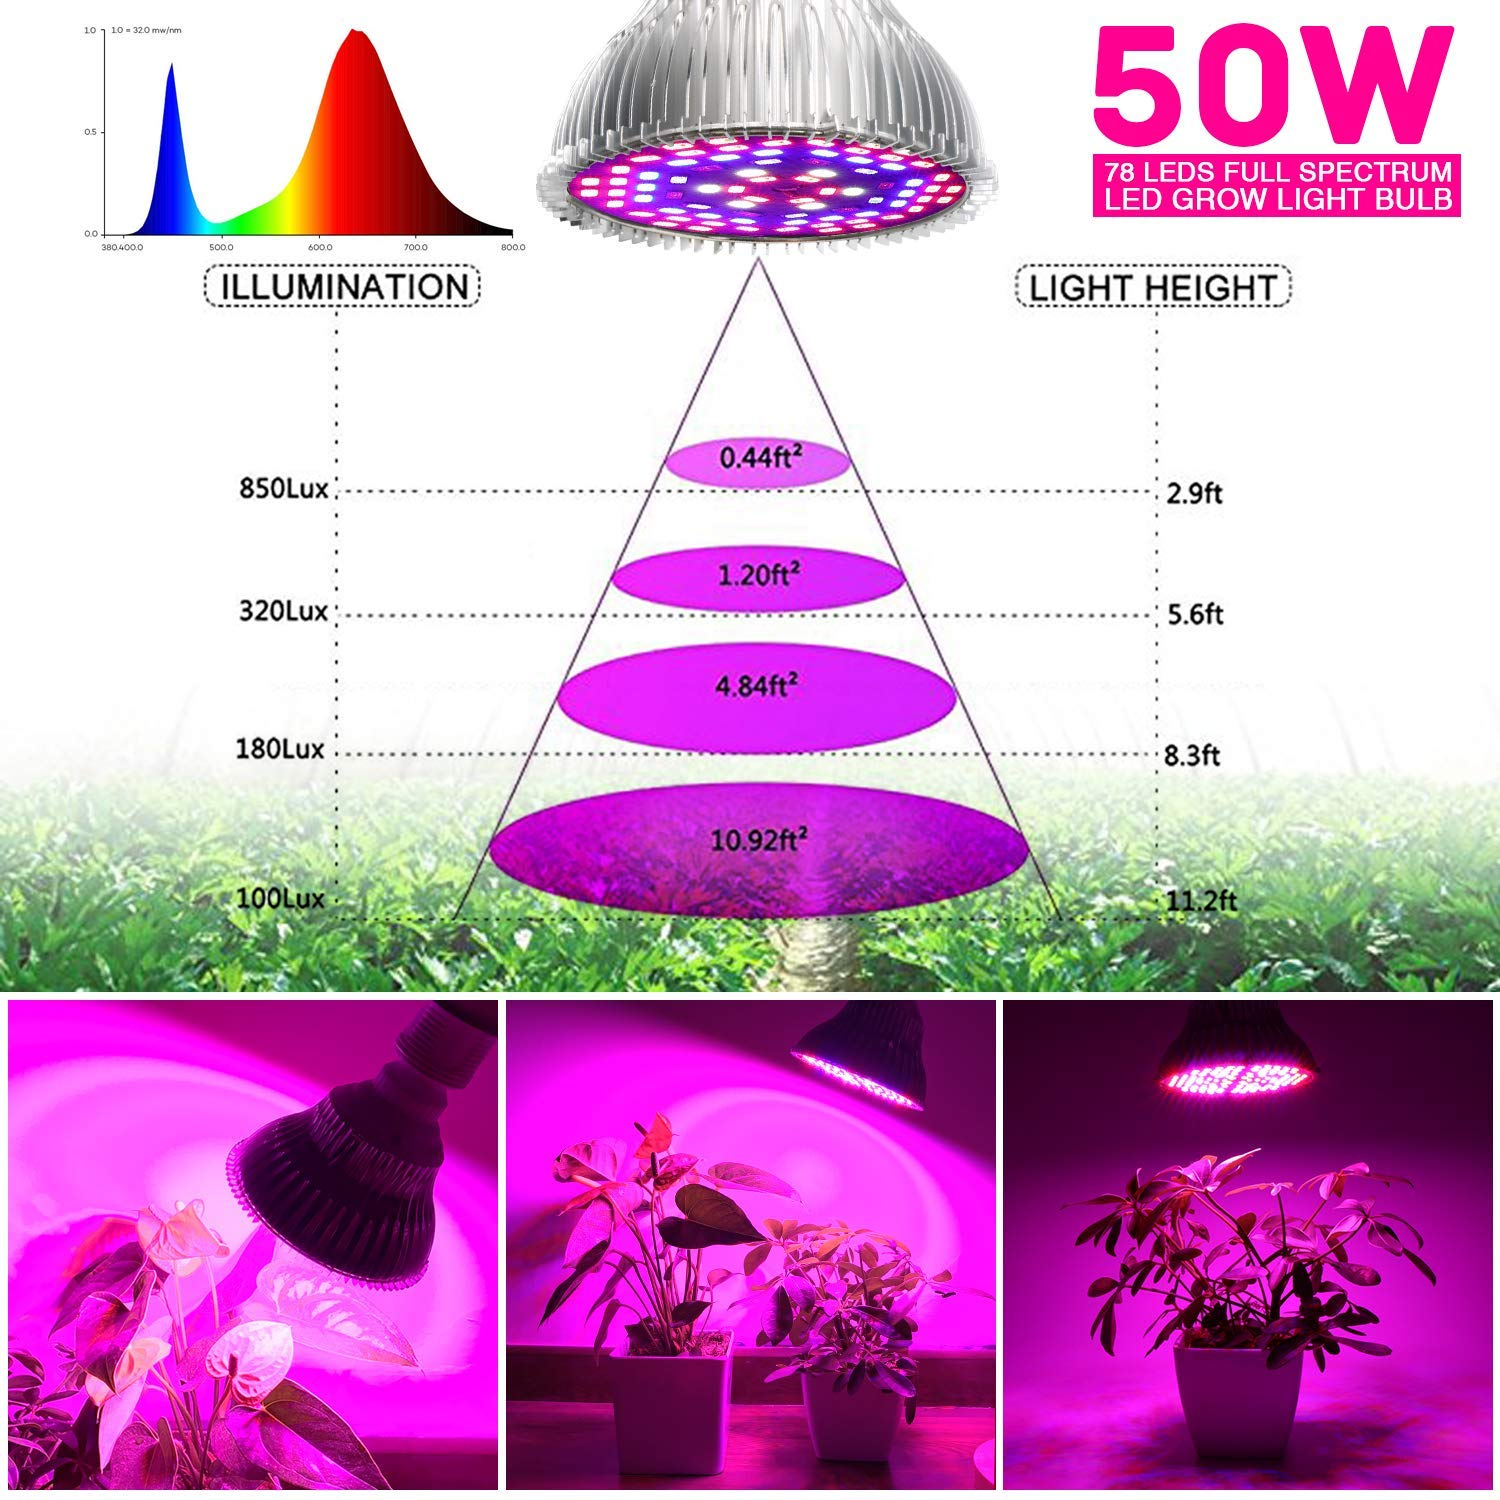 Image 5 - LED Grow Light Bulb 50W Indoor Plants  Bulbs Full Spectrum Lamp Vegetables Flowers for Hydroponics Greenhouses GardeningGrowing Lamp Bulbs   -